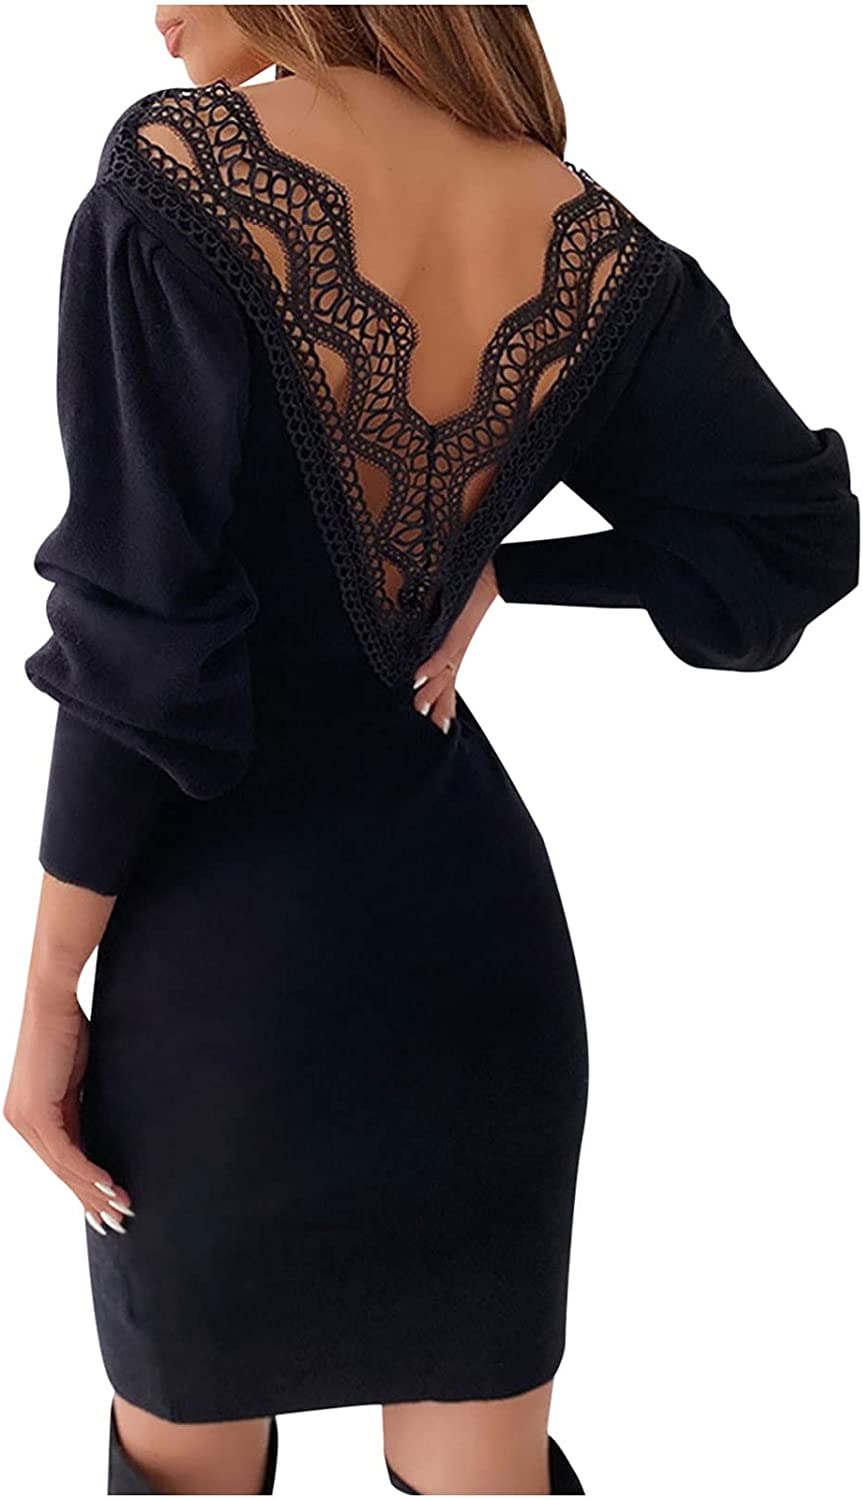 Maxi Dress Women's Sexy Solid Lace V-Neck Backless Long-Sleeved Sheath Tight Mini Dress Cocktail Wedding Wrap